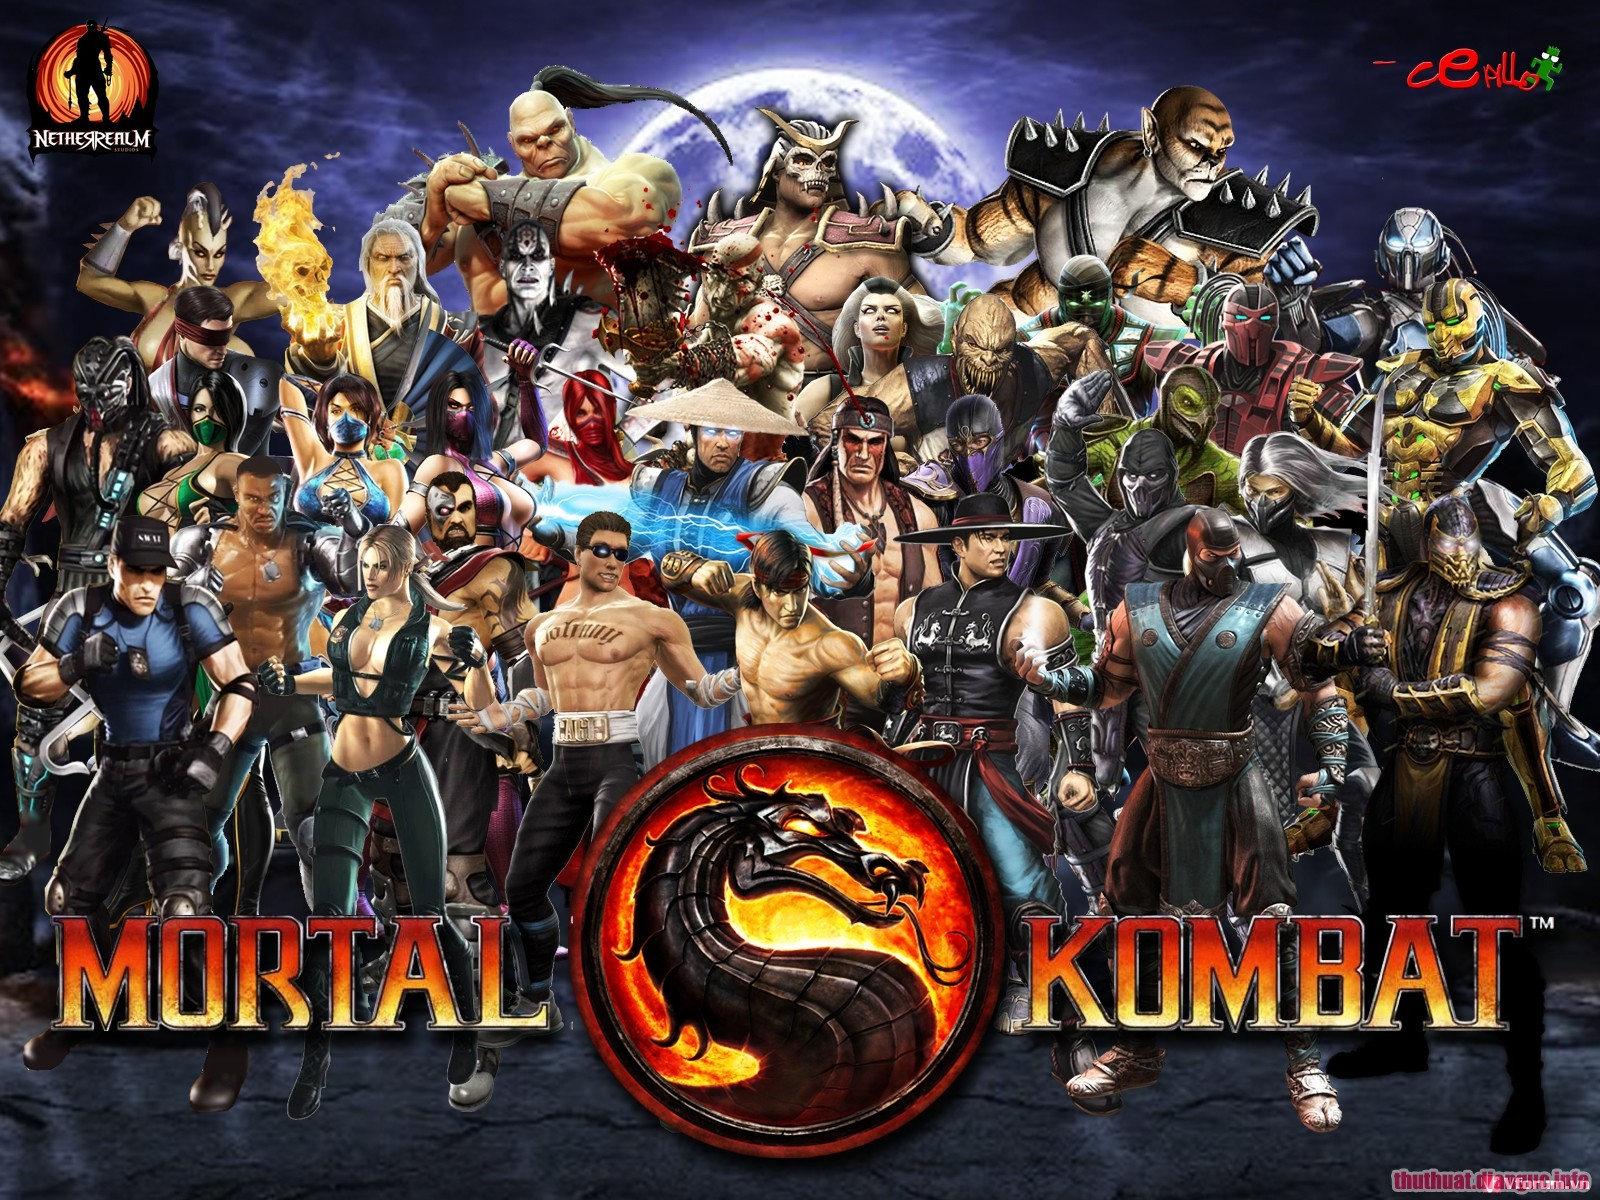 Download game Mortal Kombat 9 PC Full crack Fshare